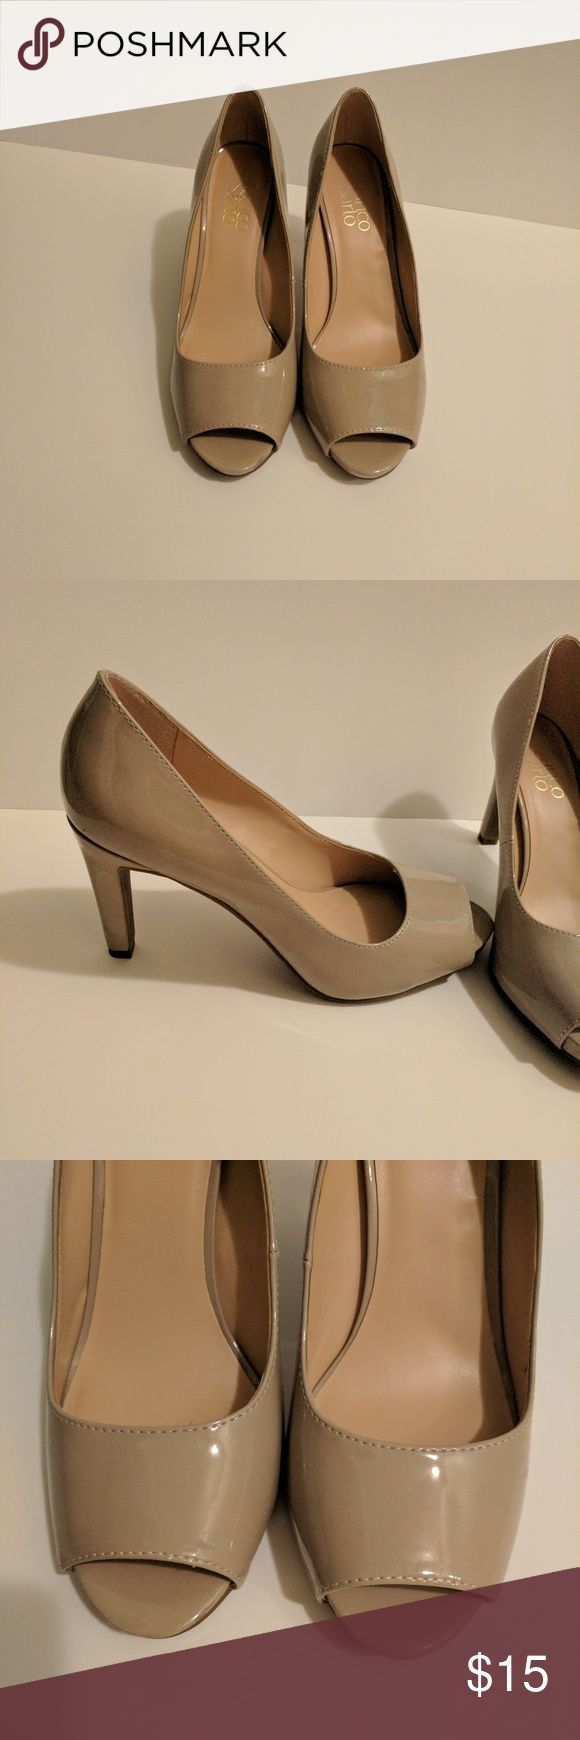 Franco Sarto peep toe pumps Franco Sarto nude peep toe pumps. Worn once includes box. Franco Sarto Shoes Heels